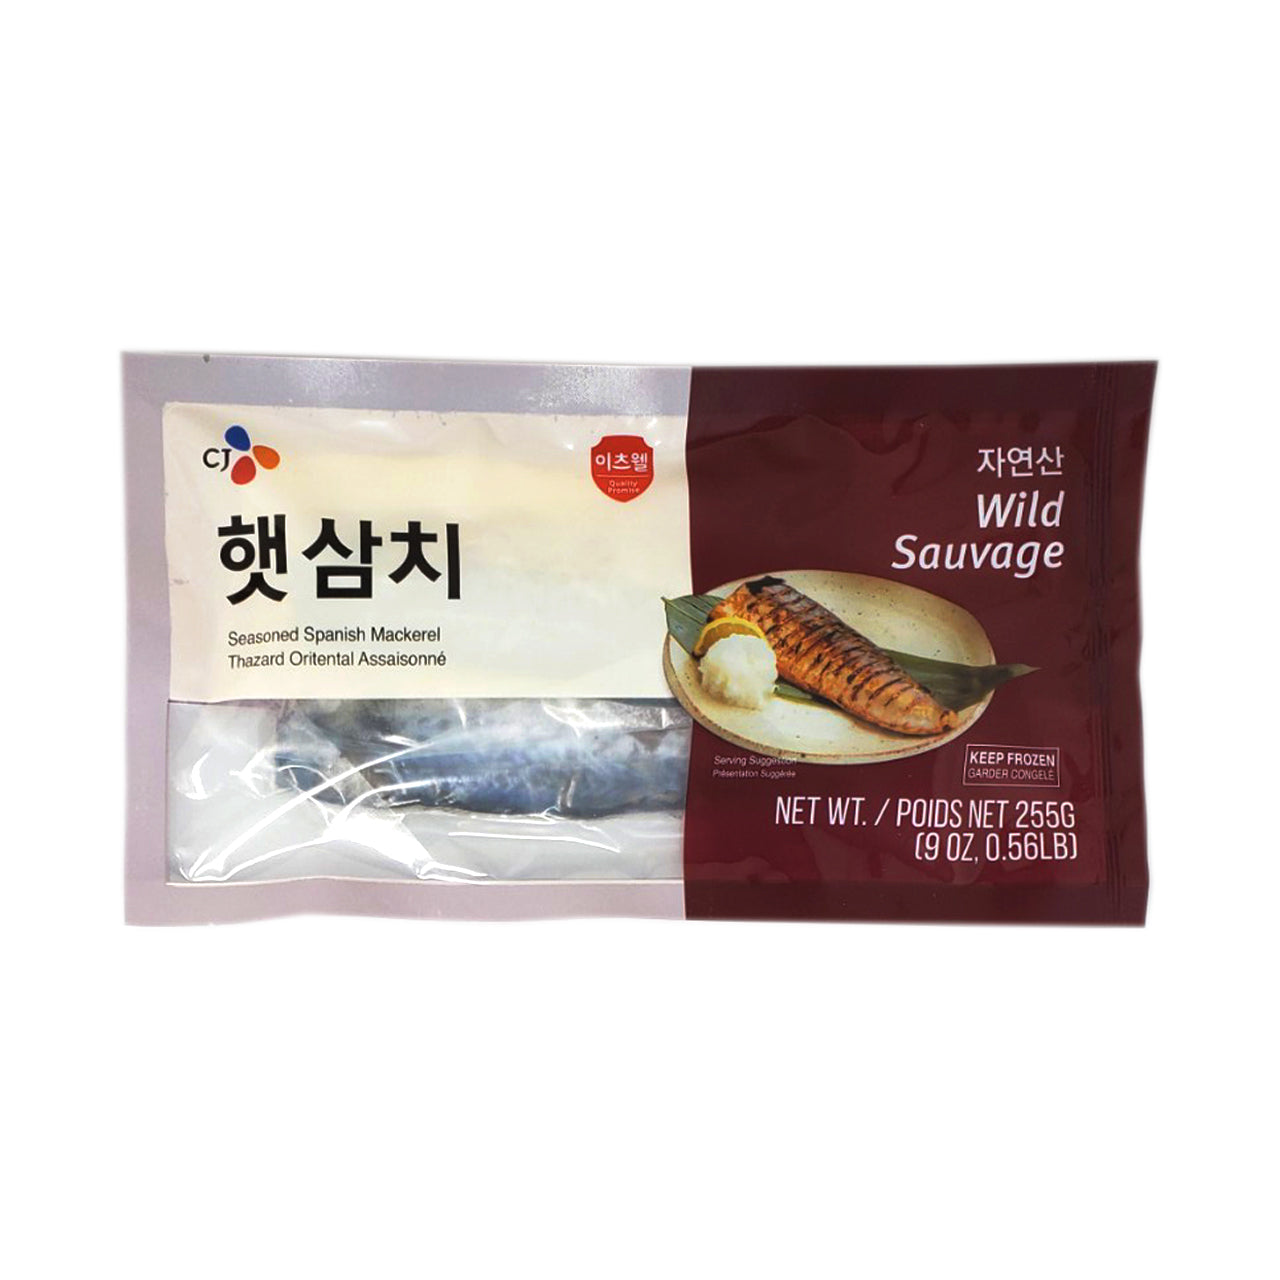 CJ 자반 삼치 (Seasoned Spanish Makerel) 255g